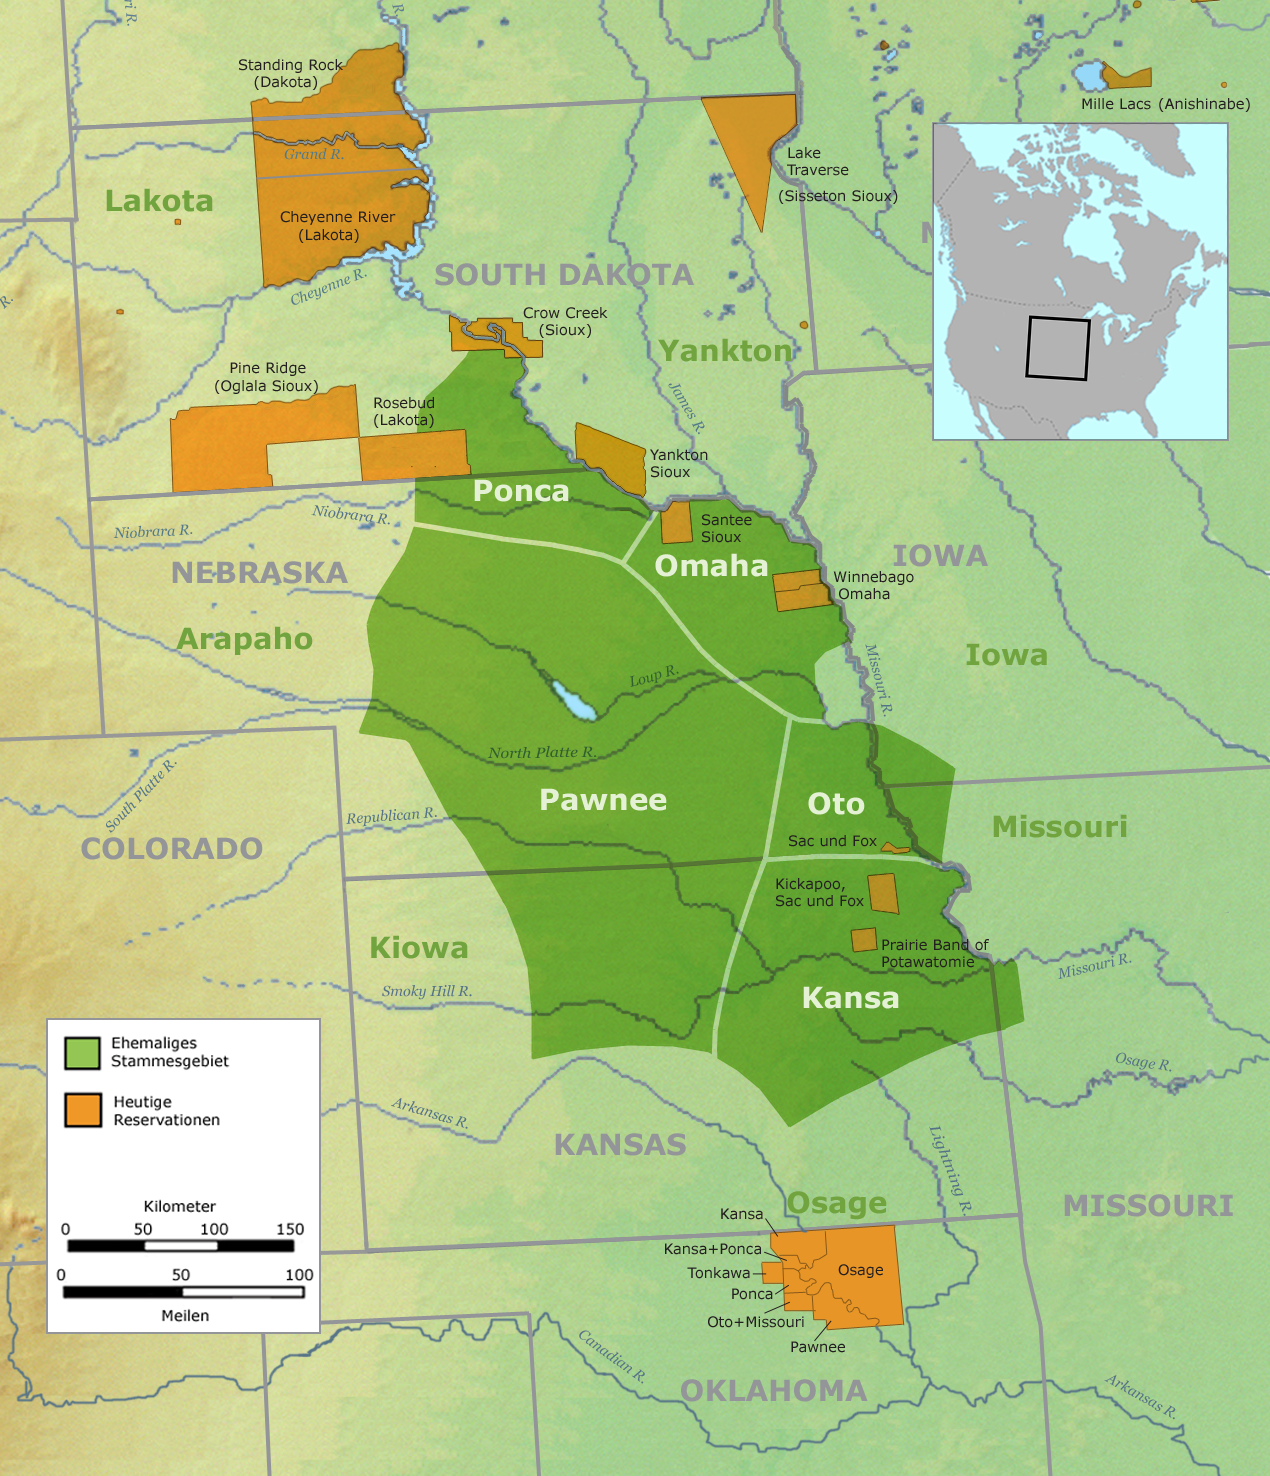 This Map Shows The Territory Of The Pawnee Tribe The Pawnee Tribe Lived In South Dakota Kansas And Nebraska The Green Regions Of The Map Represent Their